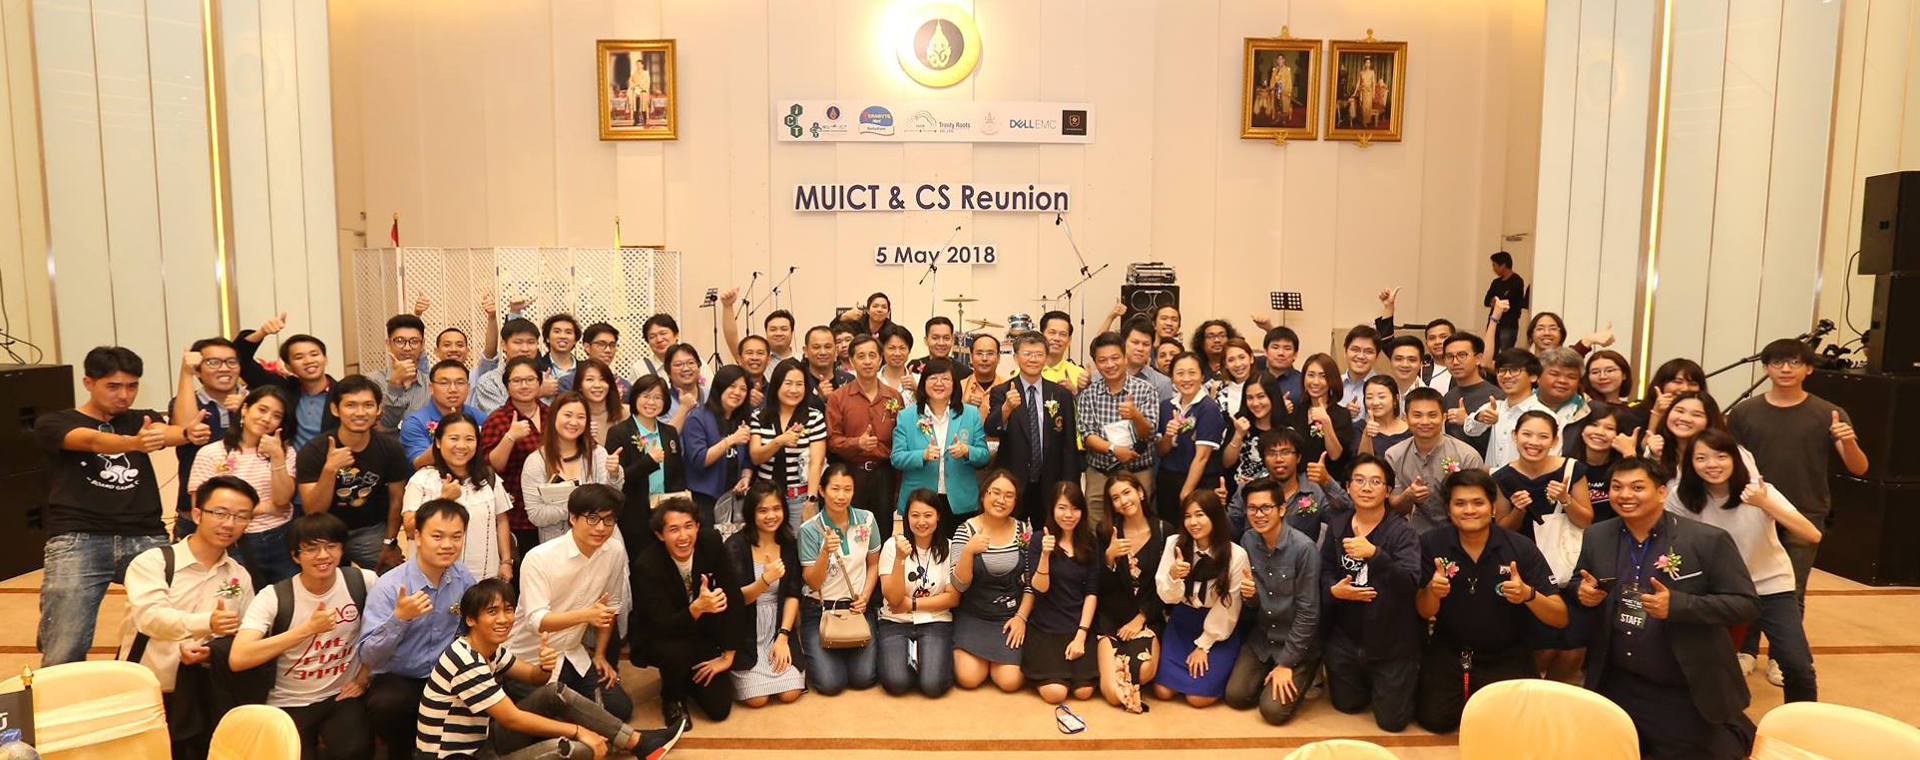 MUICT & CS Reunion 2018